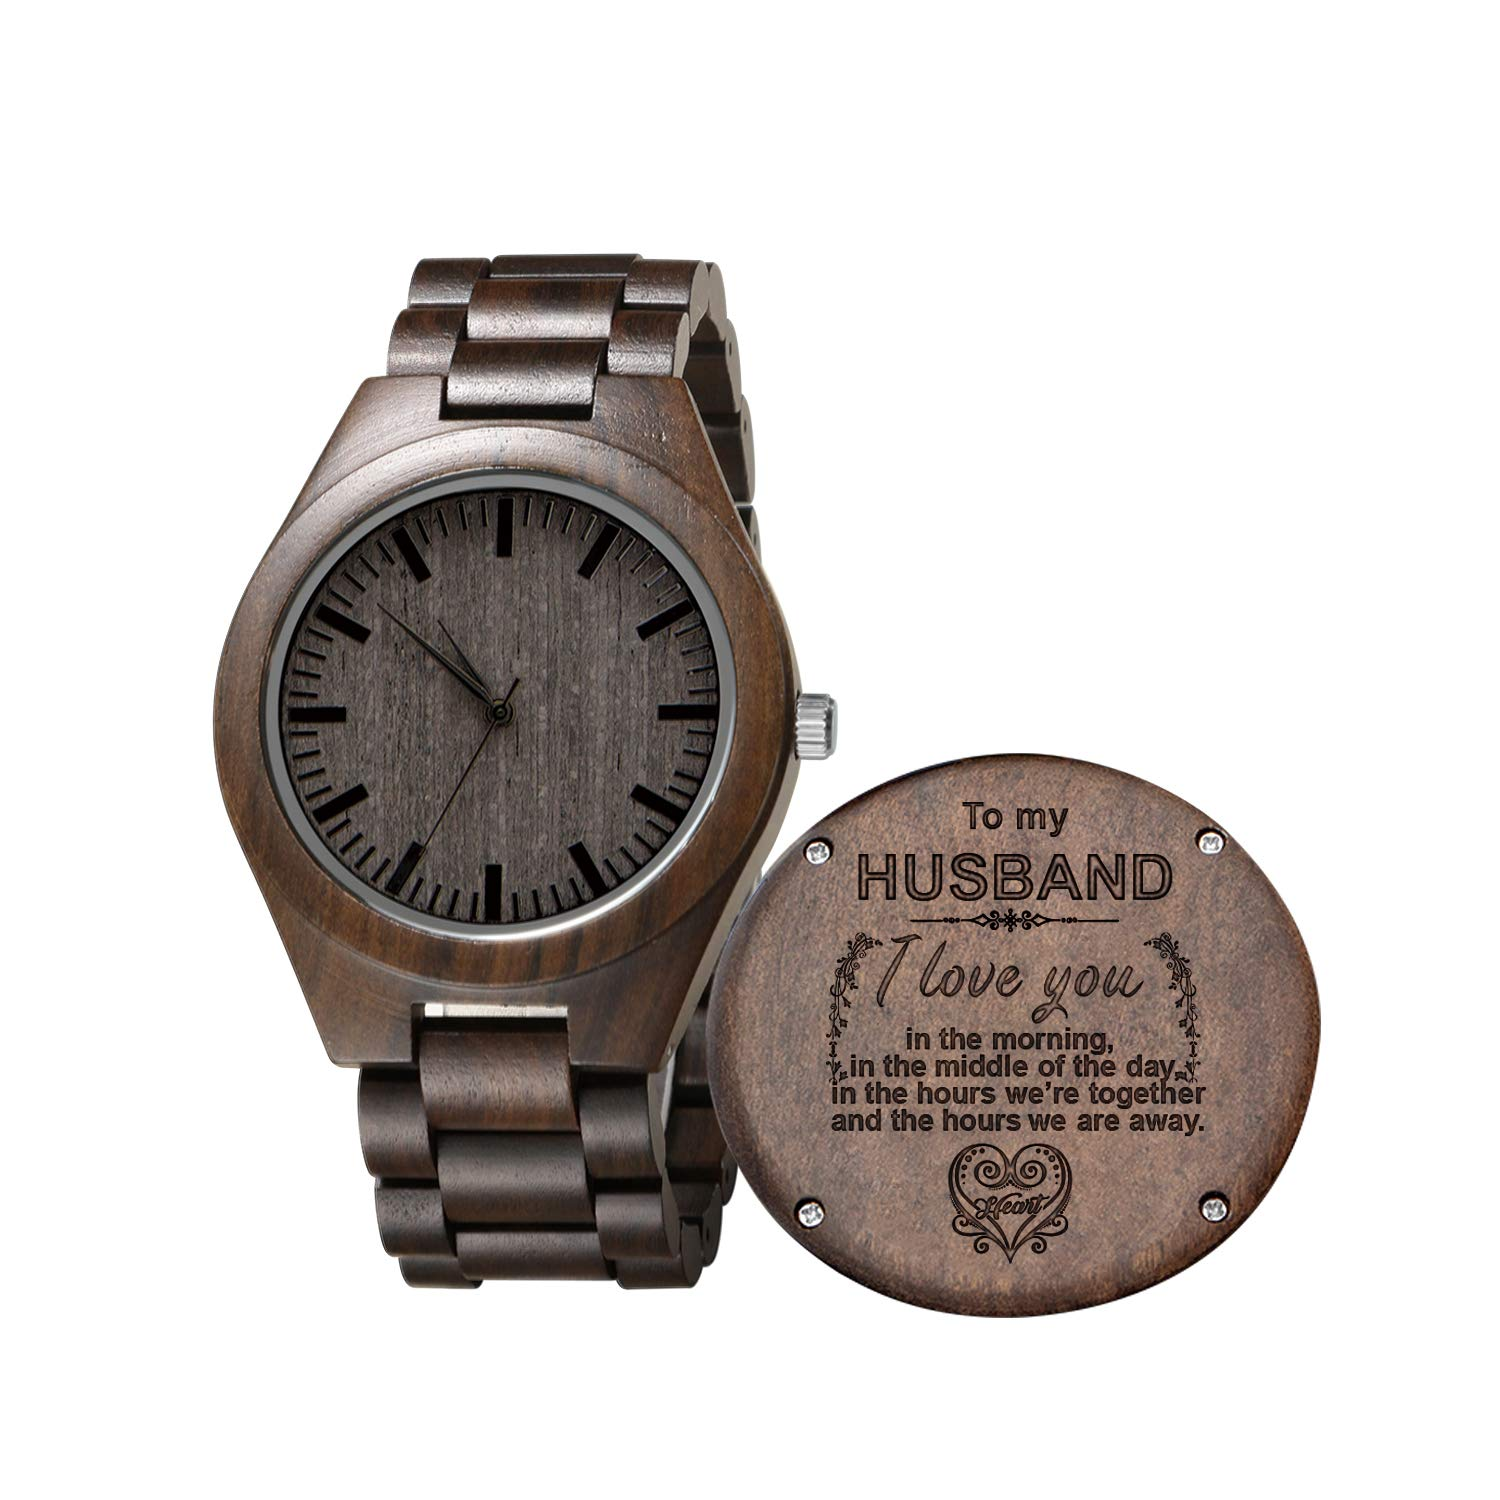 Engraved Wooden Watch for Son and Boyfriend,Personalized Wood Watch Gift for Boyfriend, Graduation Gift from Mom, from Dad (to Husband)